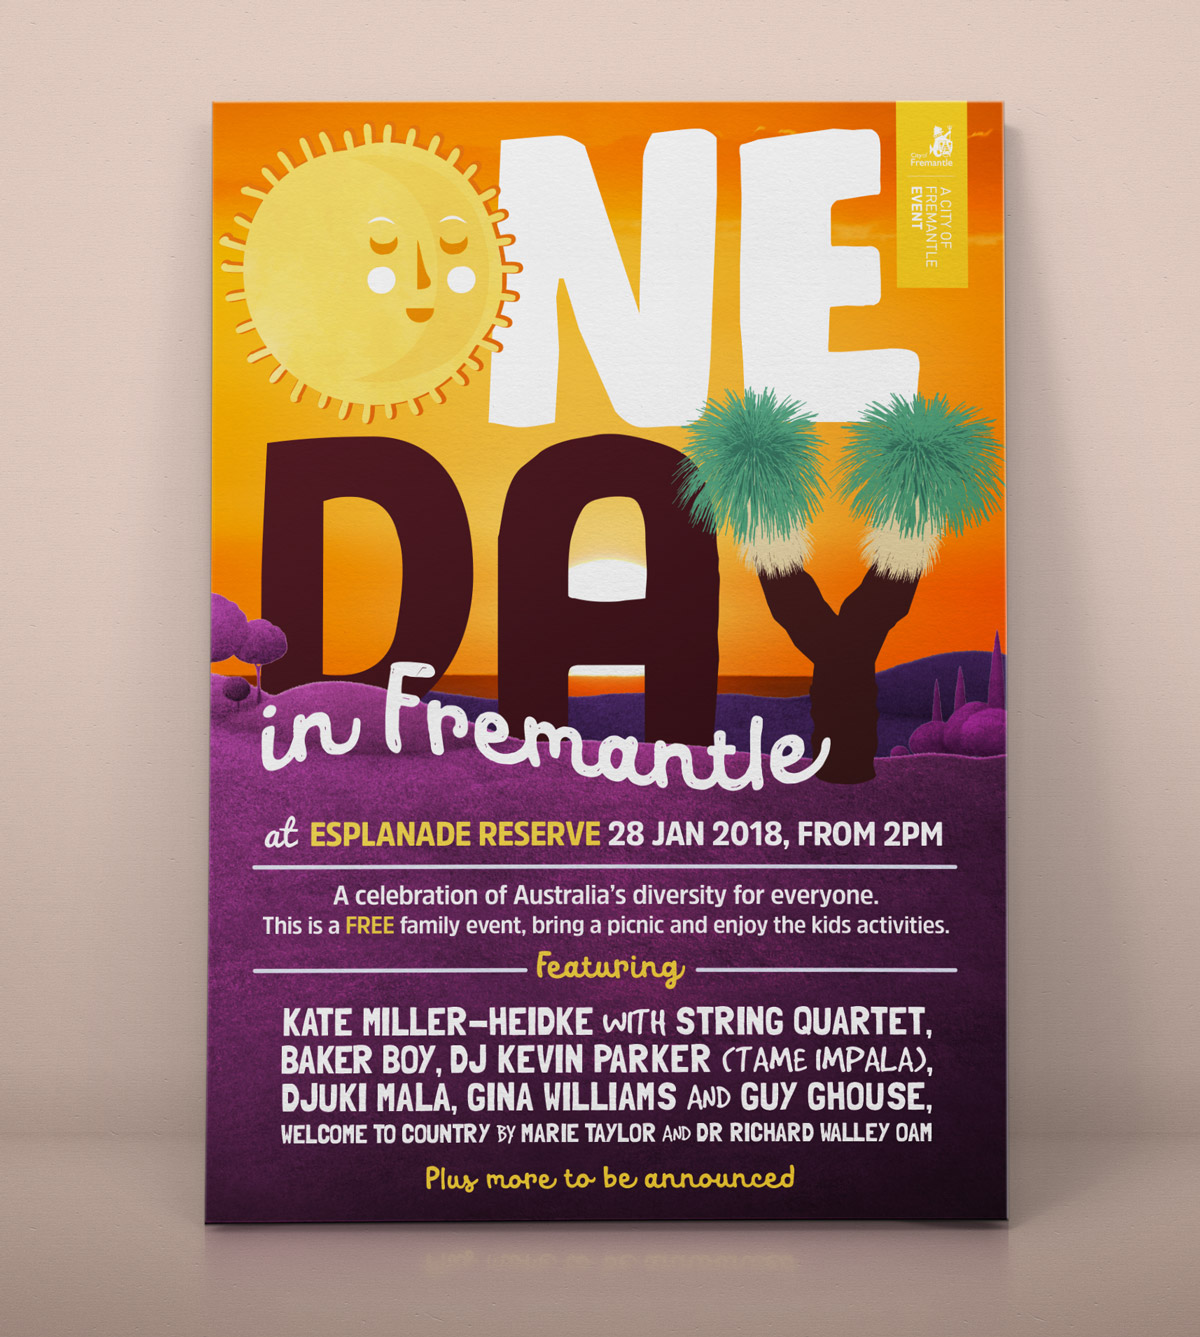 Event Branding for One Day in Fremantle